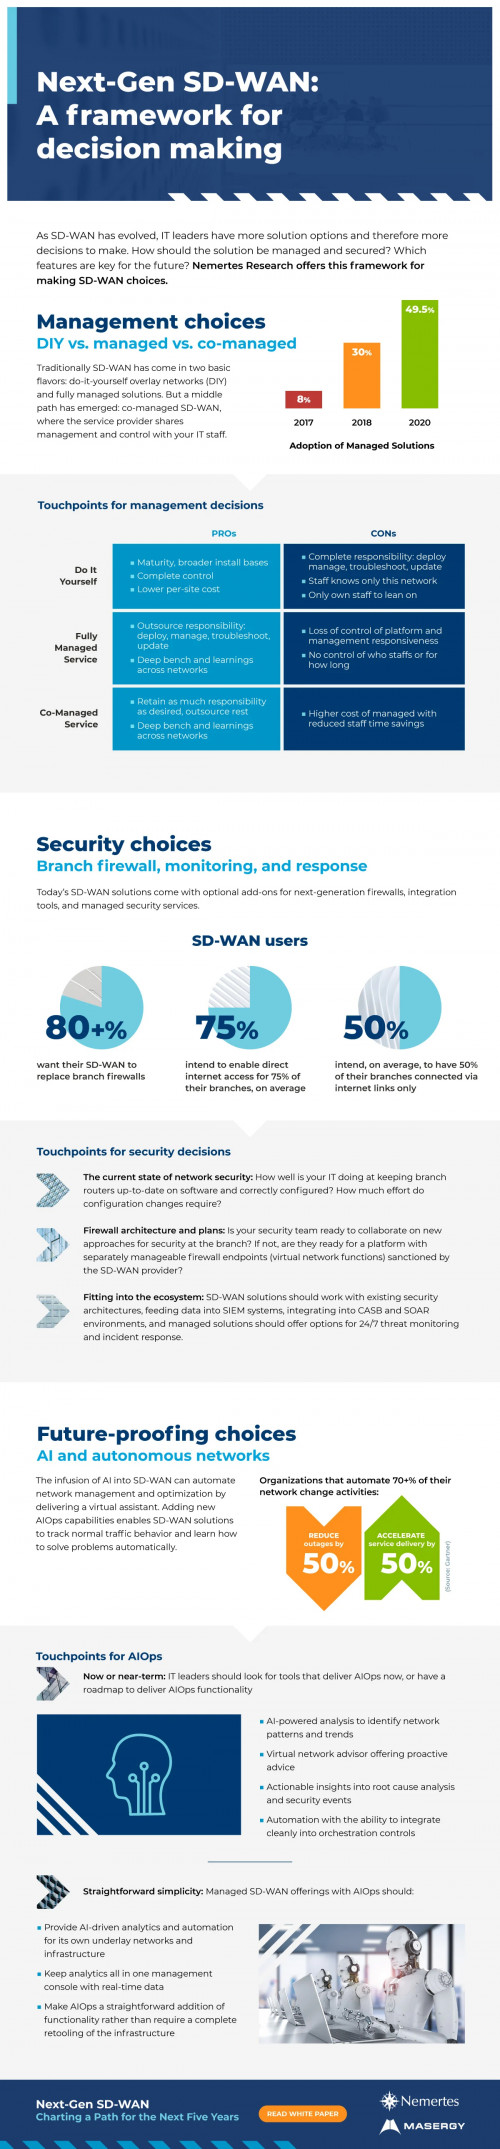 Next-Gen-SD-WAN-A-Framework-for-Decision-Making-Infographic70de08f4a2715eff.jpg